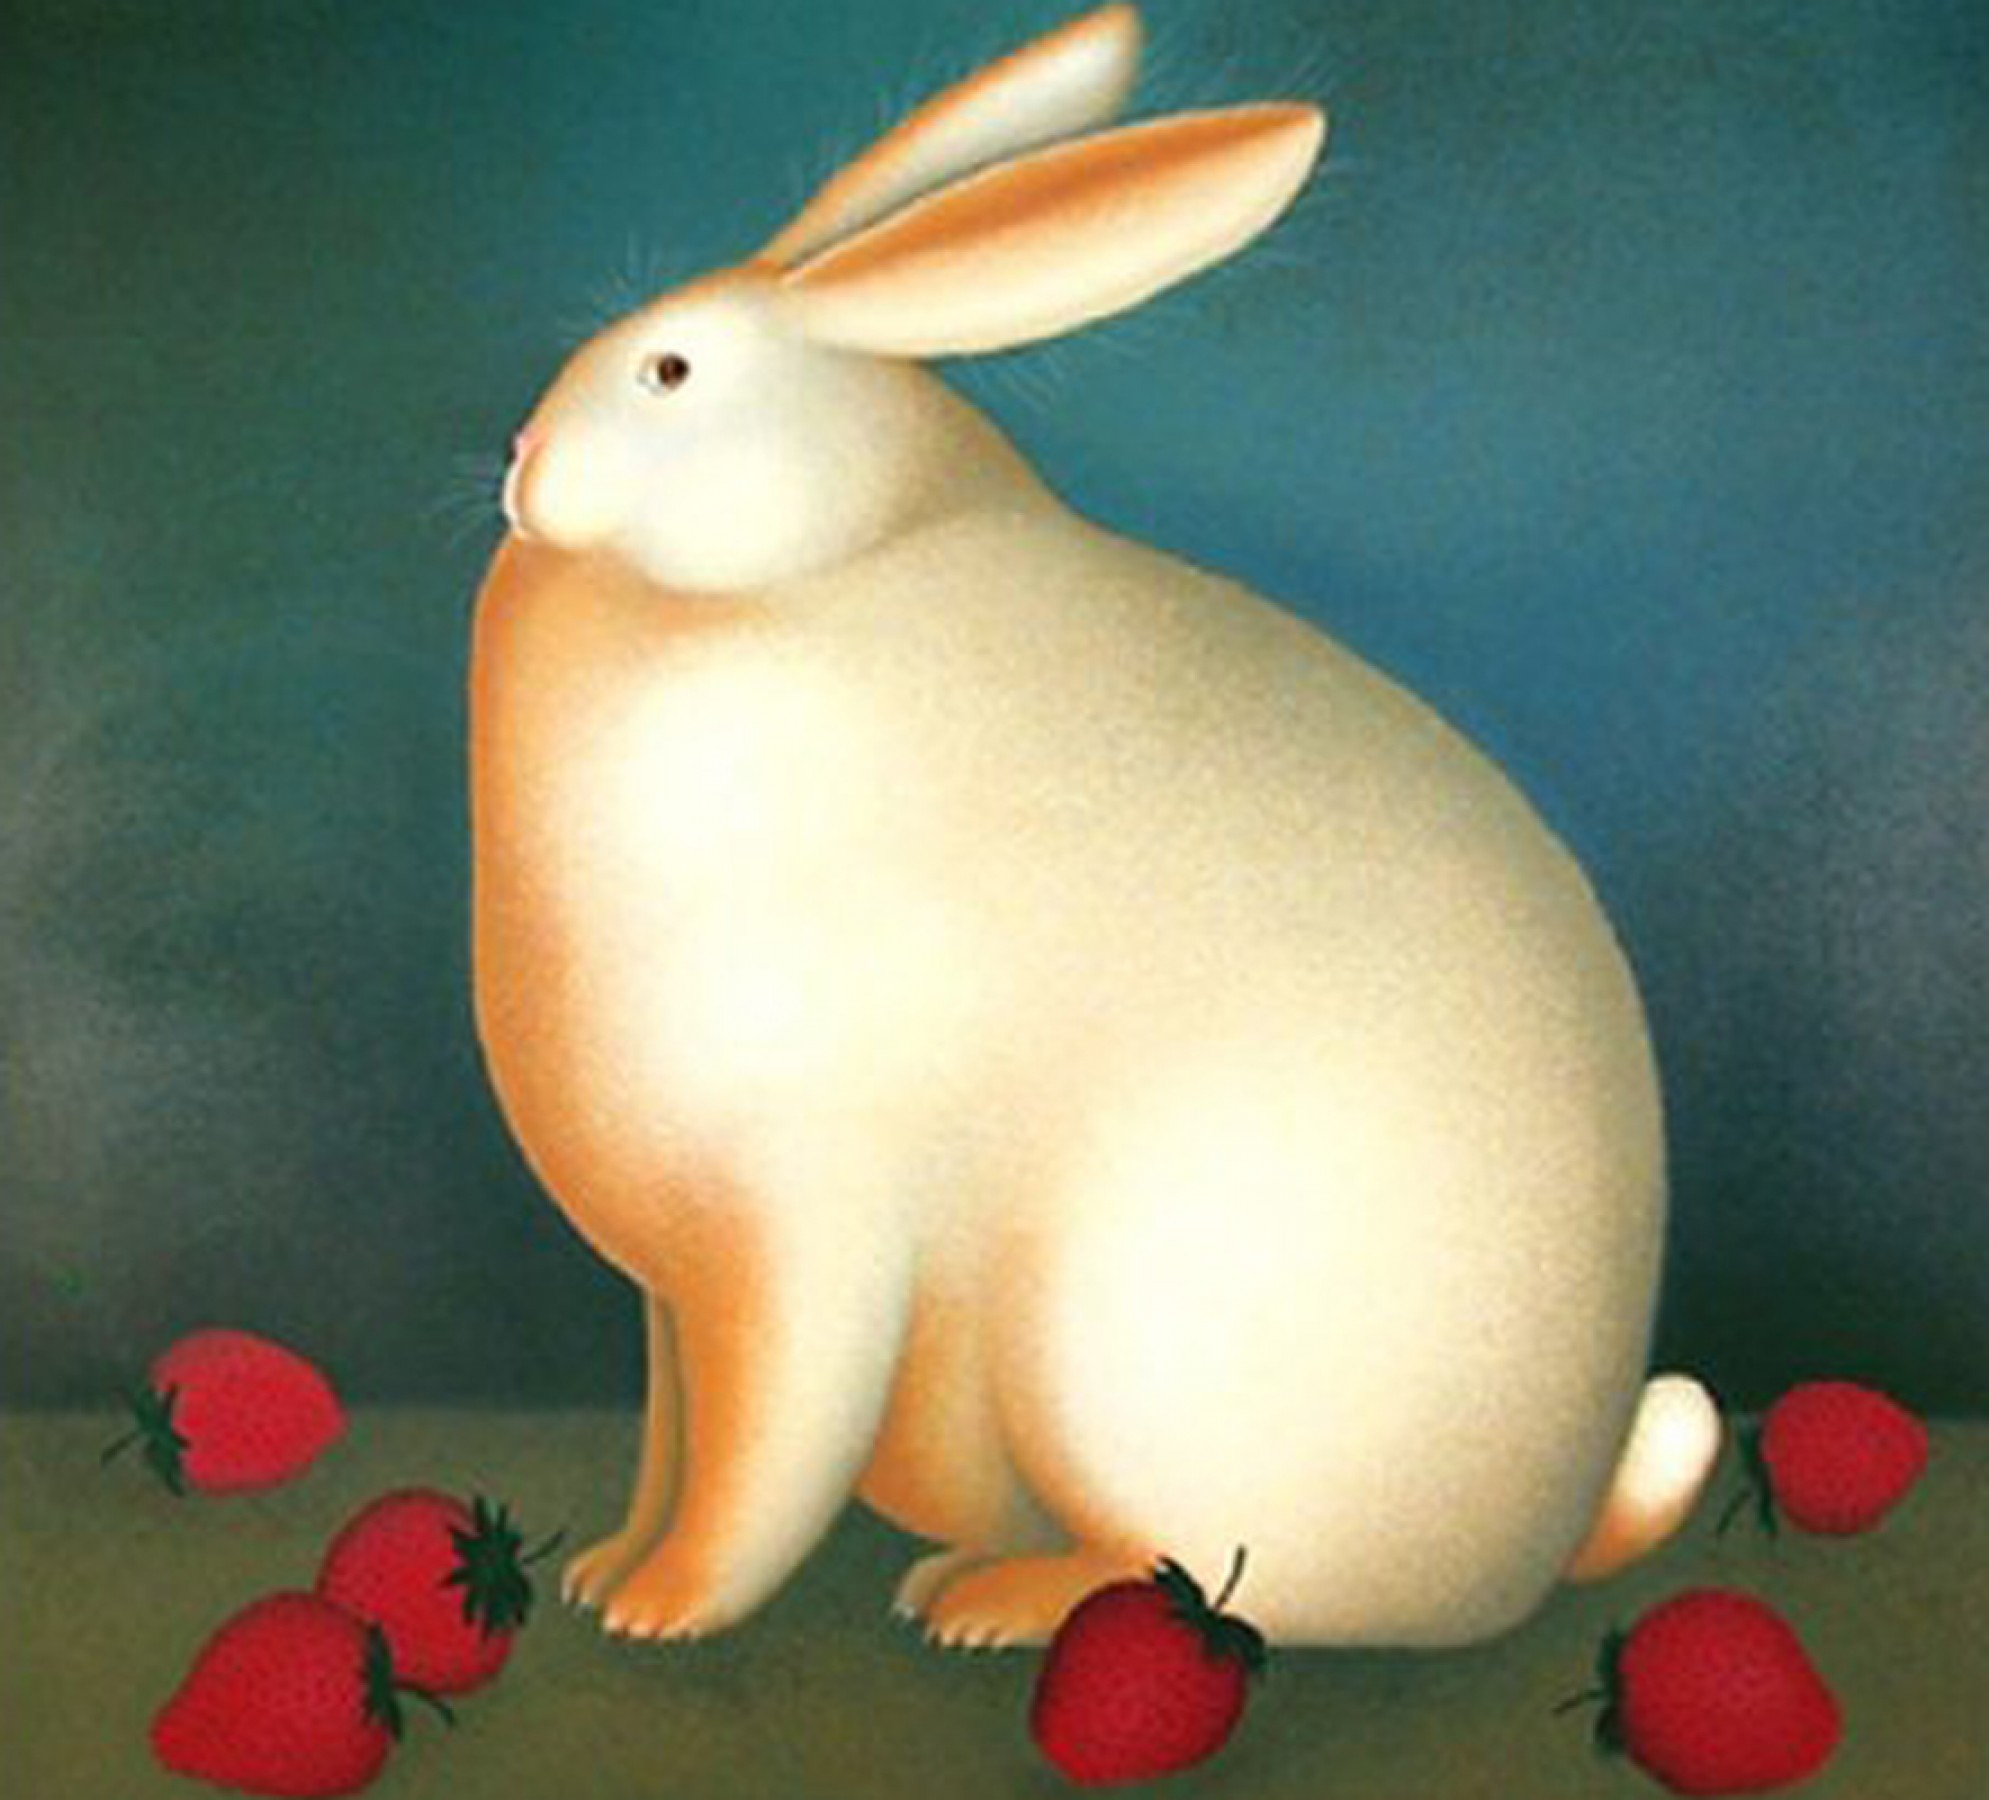 Rabbit With Strawberries 1989